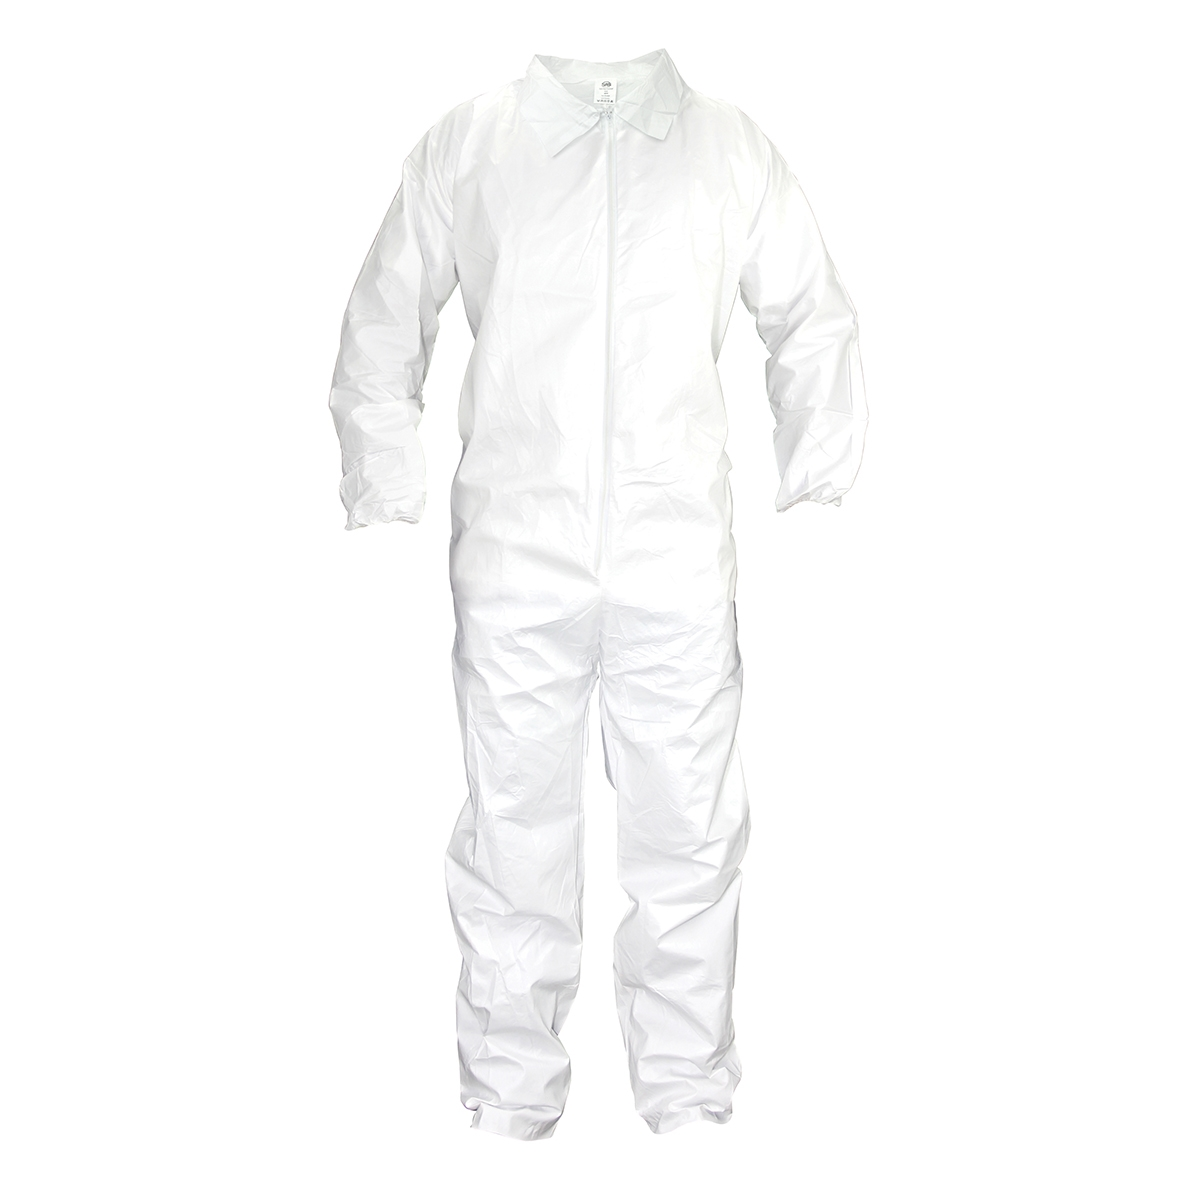 Gen-Nex Protective Coverall XL by SAS Safety